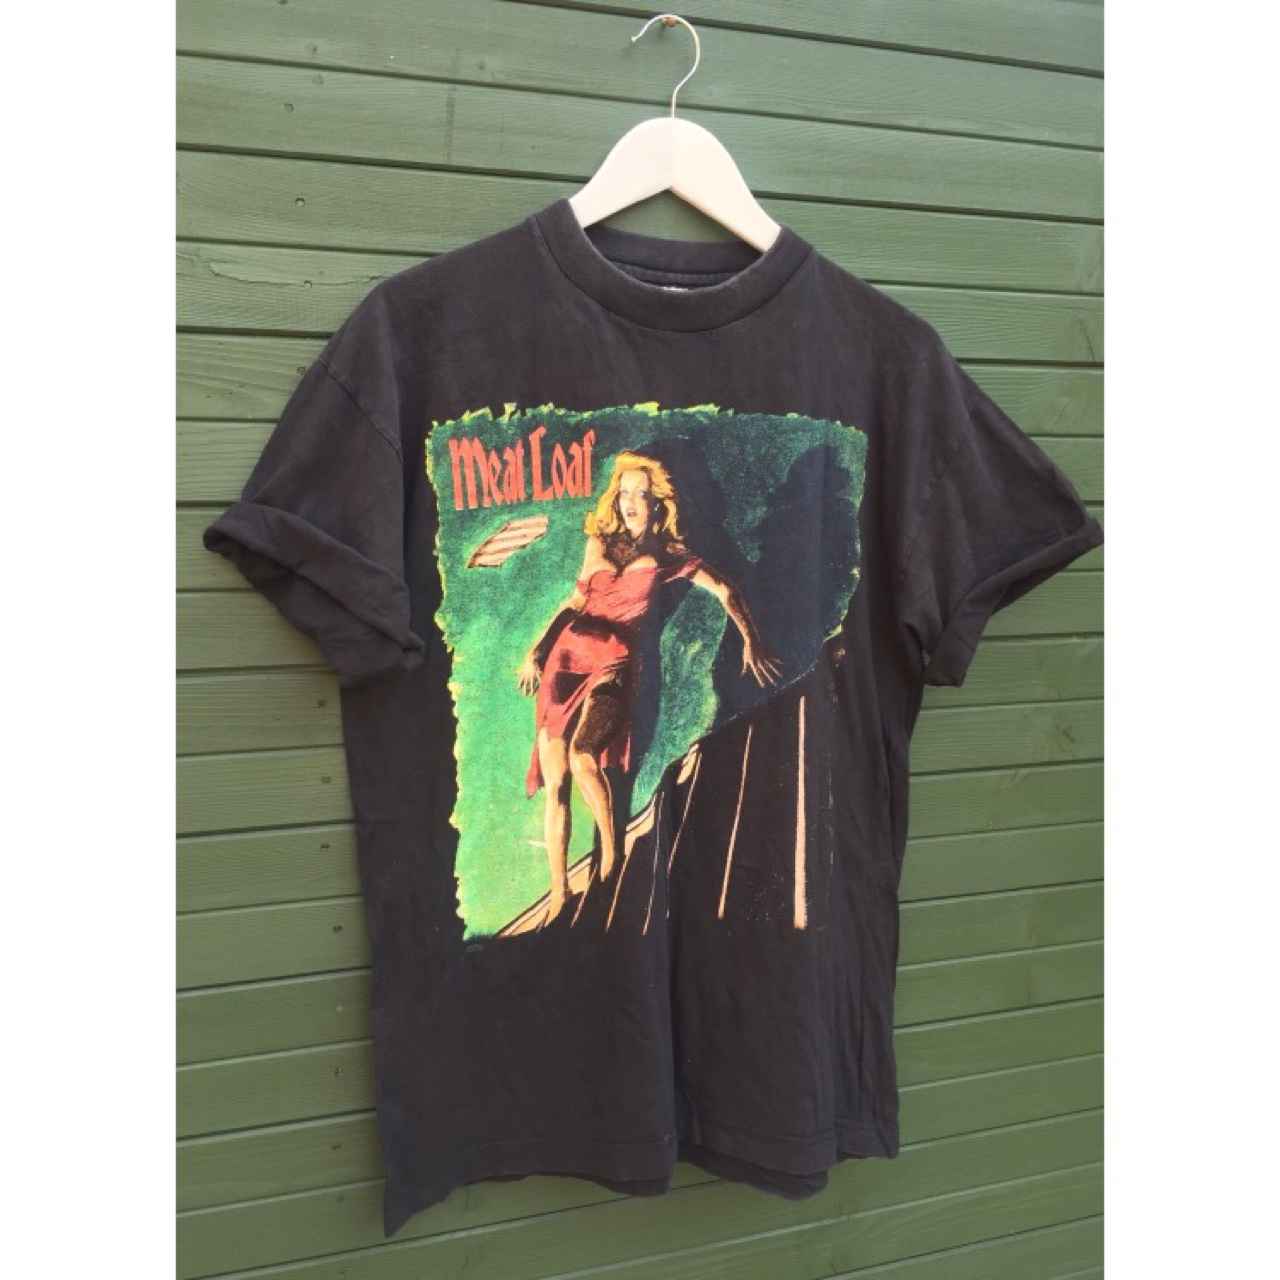 Vintage 90s 1995 Meatloaf Welcome To The Neighborhood Tour Tshirt Large